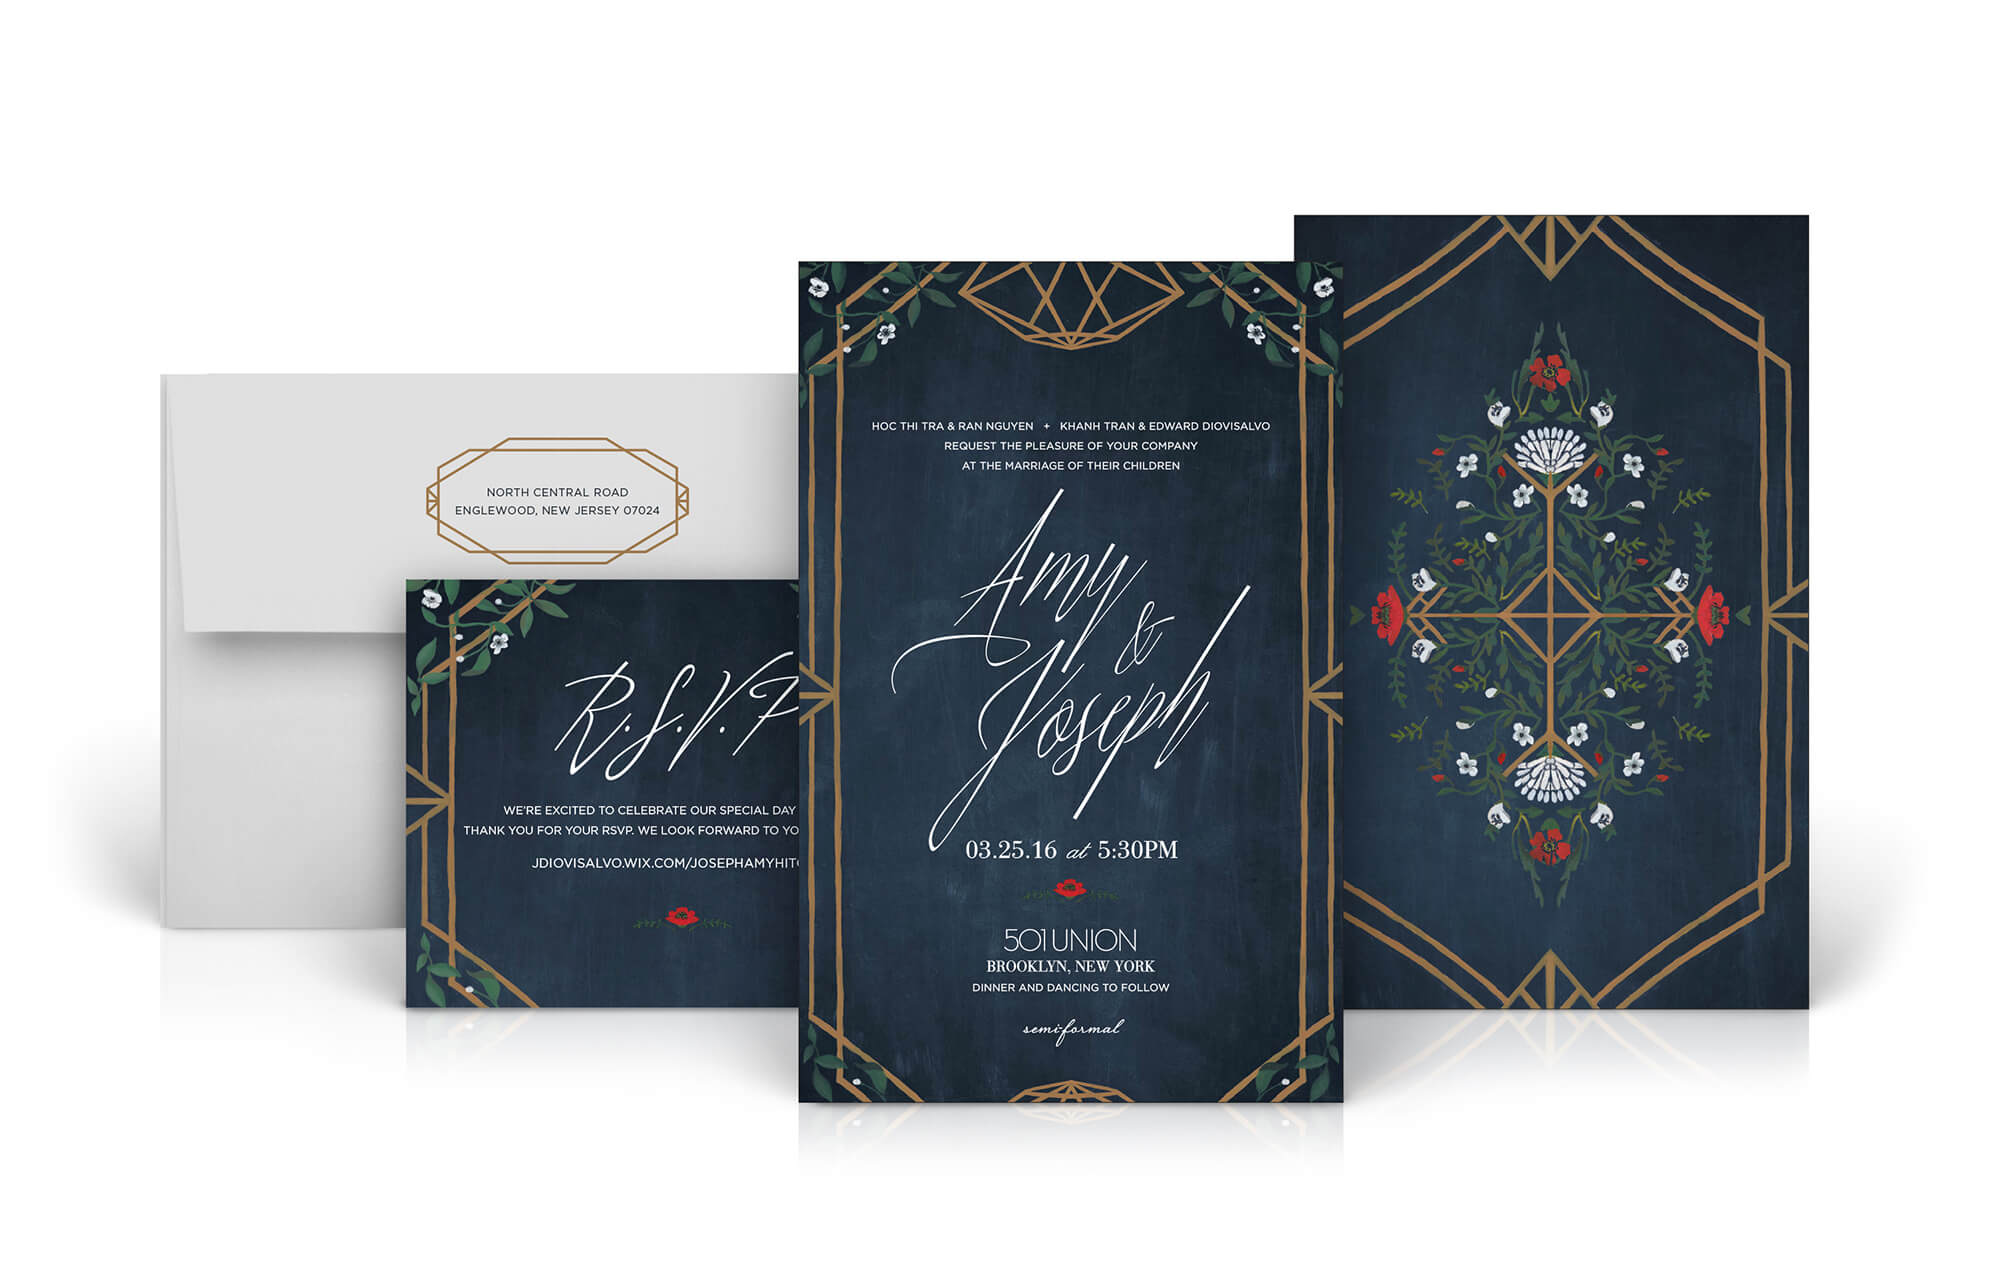 Painted Brooklyn wedding invitation